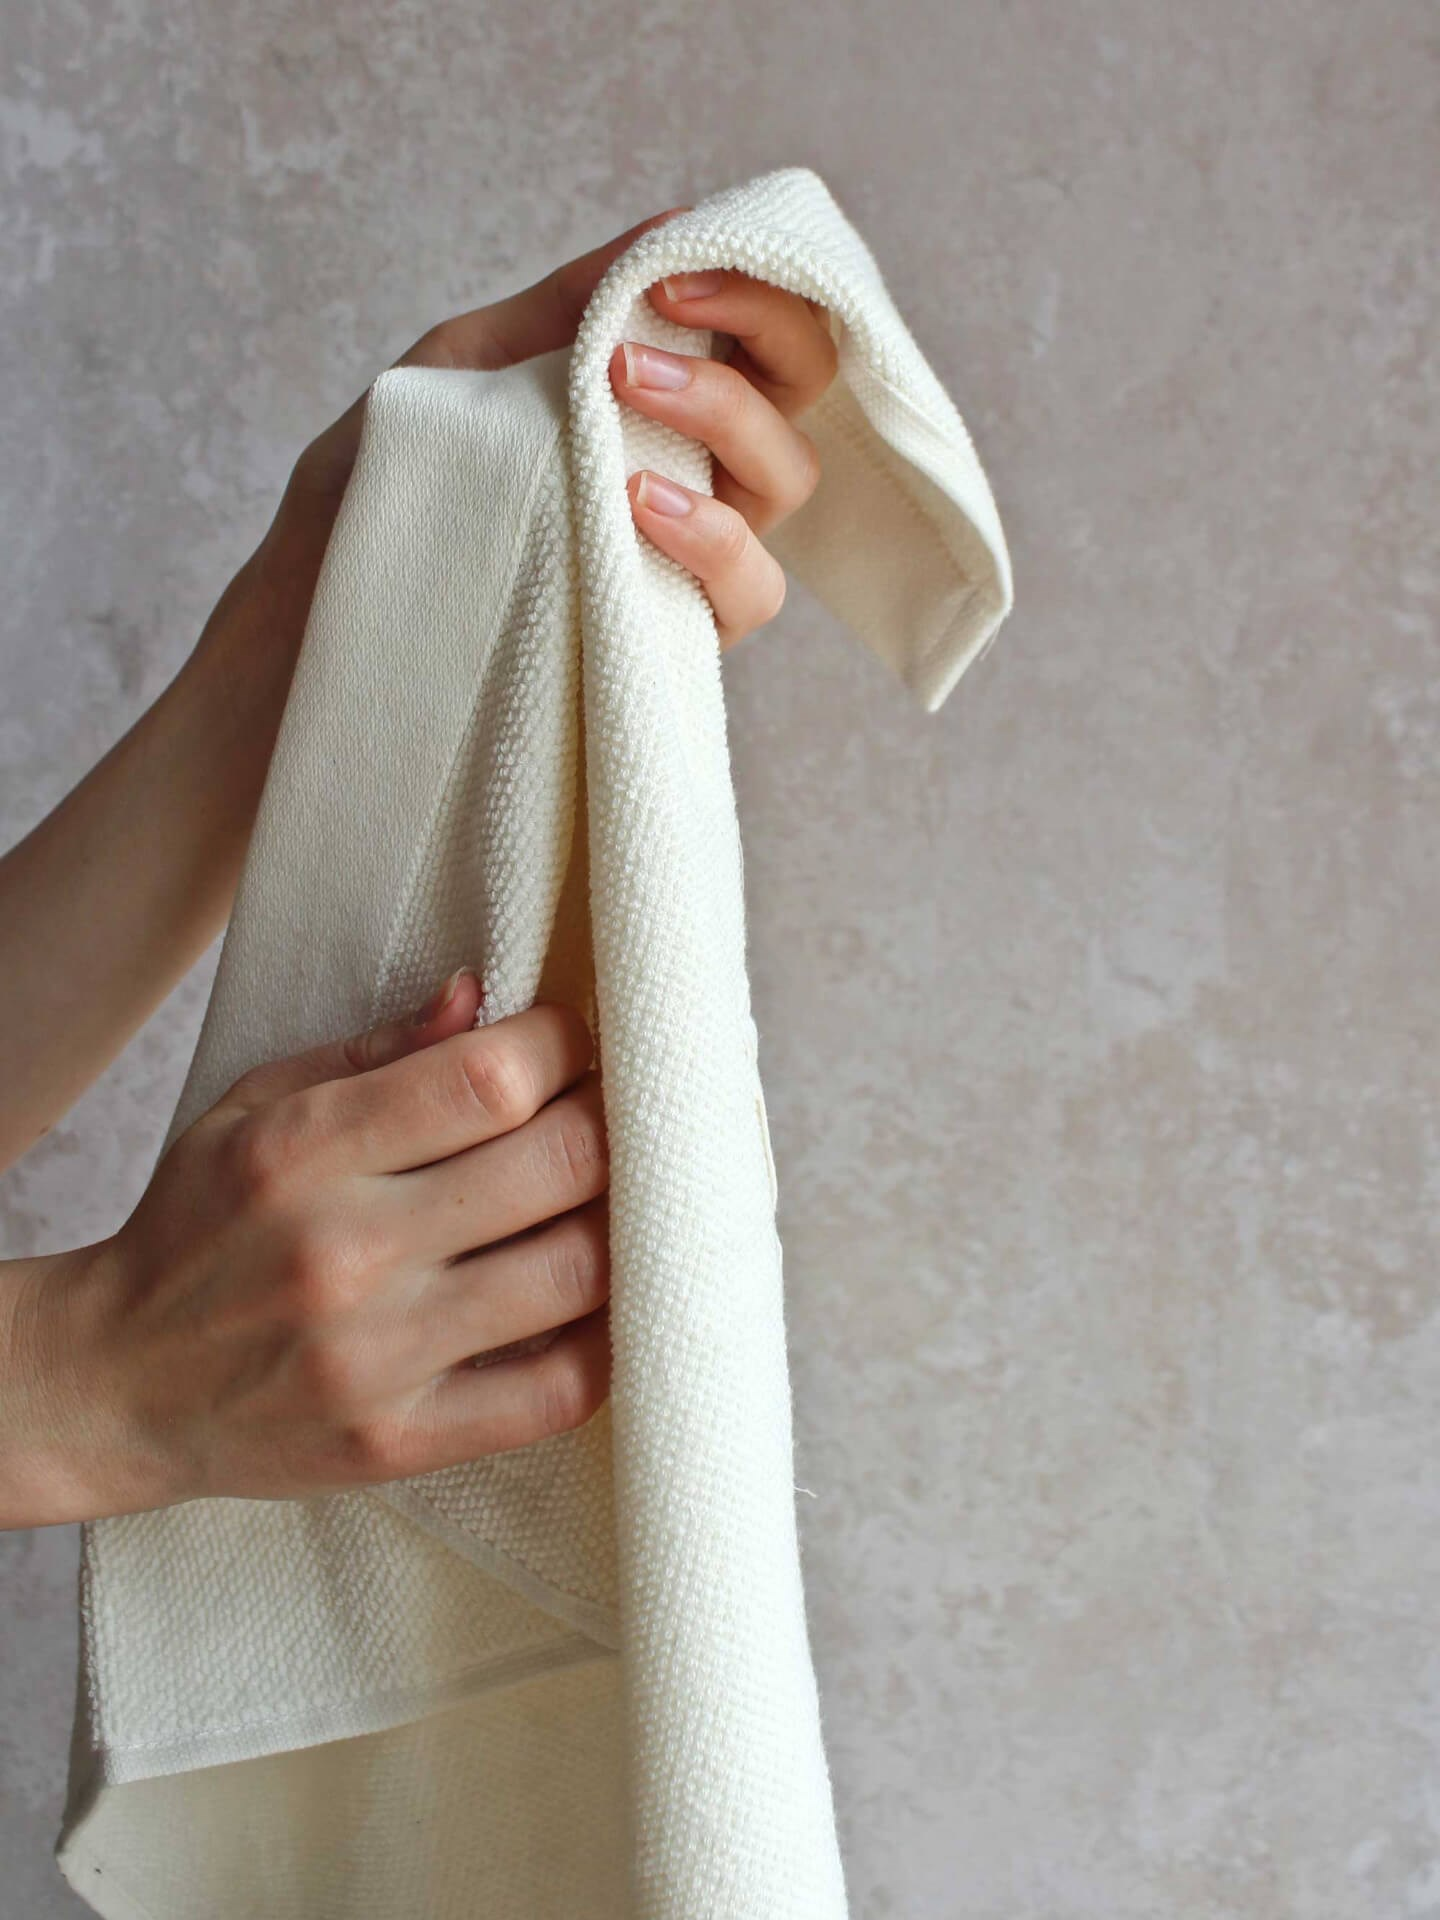 The Organic Company Everyday hand towel